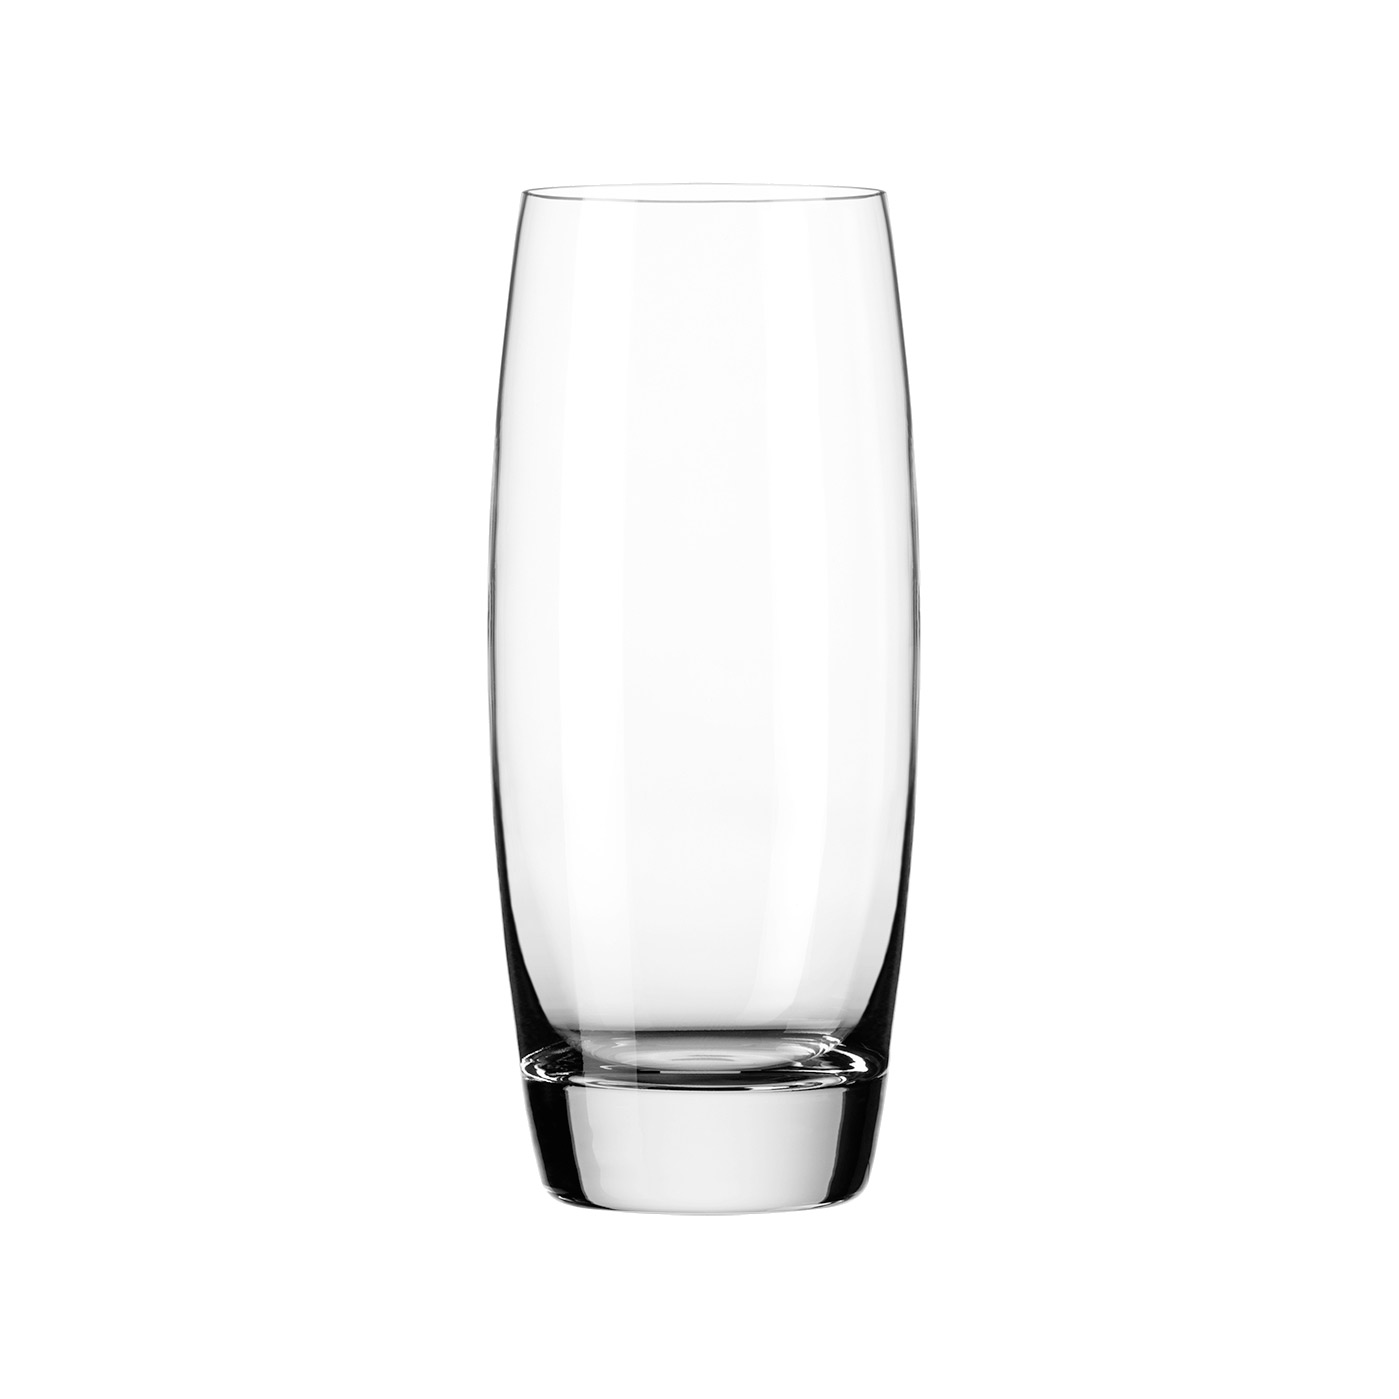 Libbey Glass 9027 glass, cooler